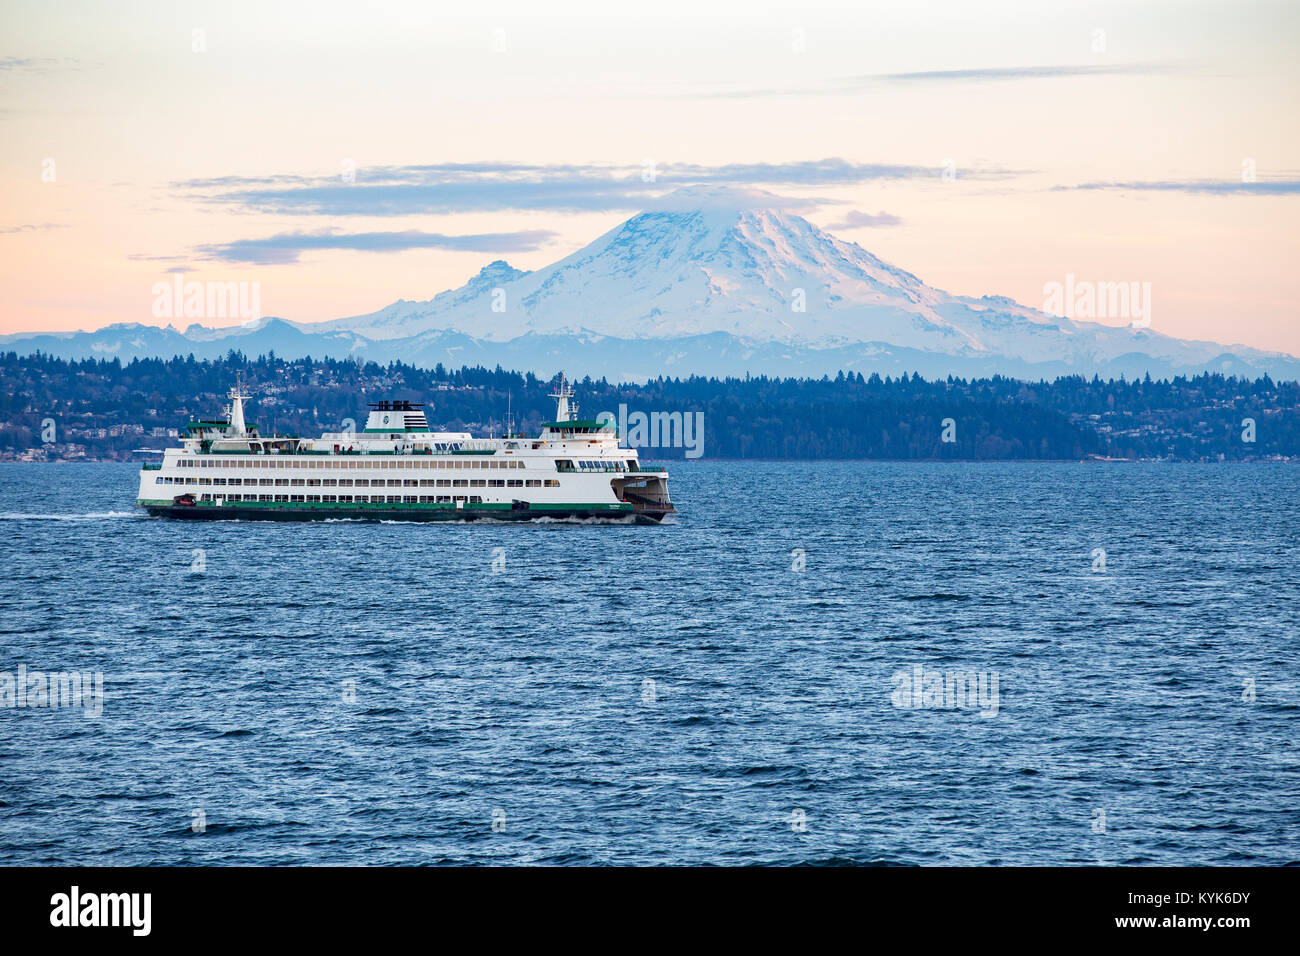 Mount Rainier with Seattle ferry on Puget Sound. - Stock Image